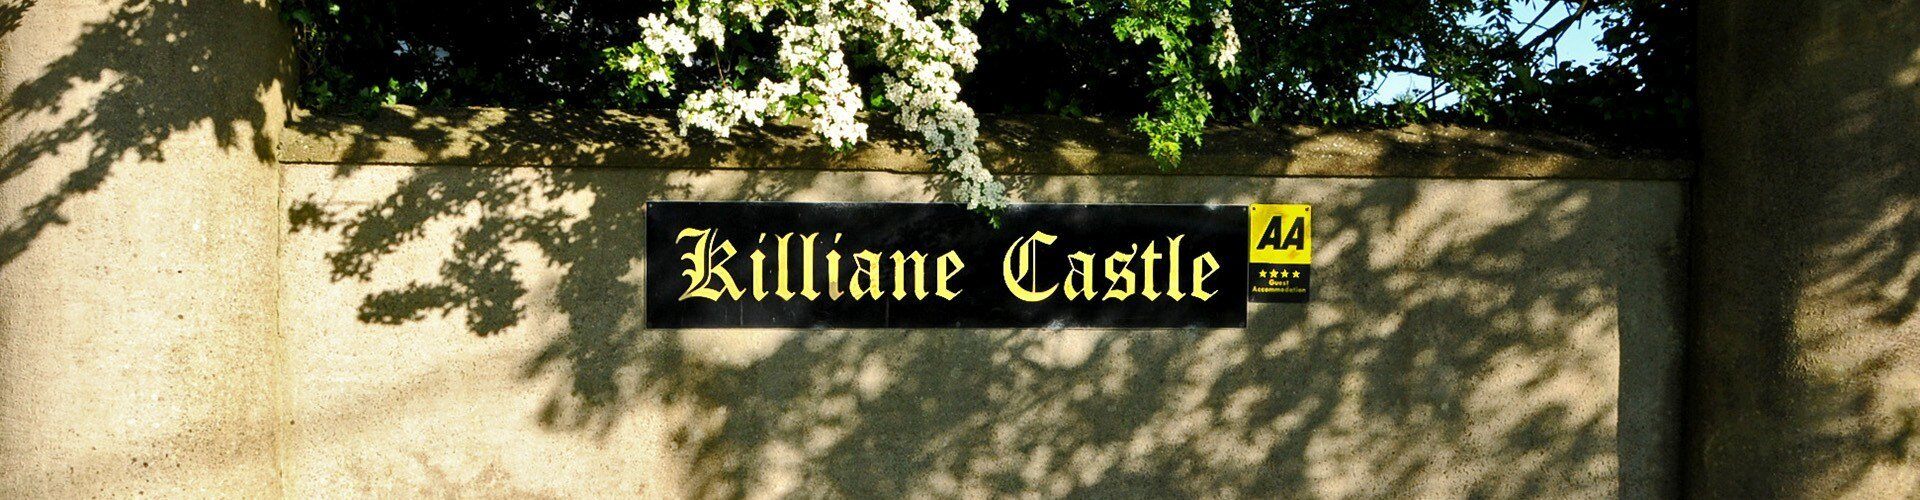 Killiane Castle AA****